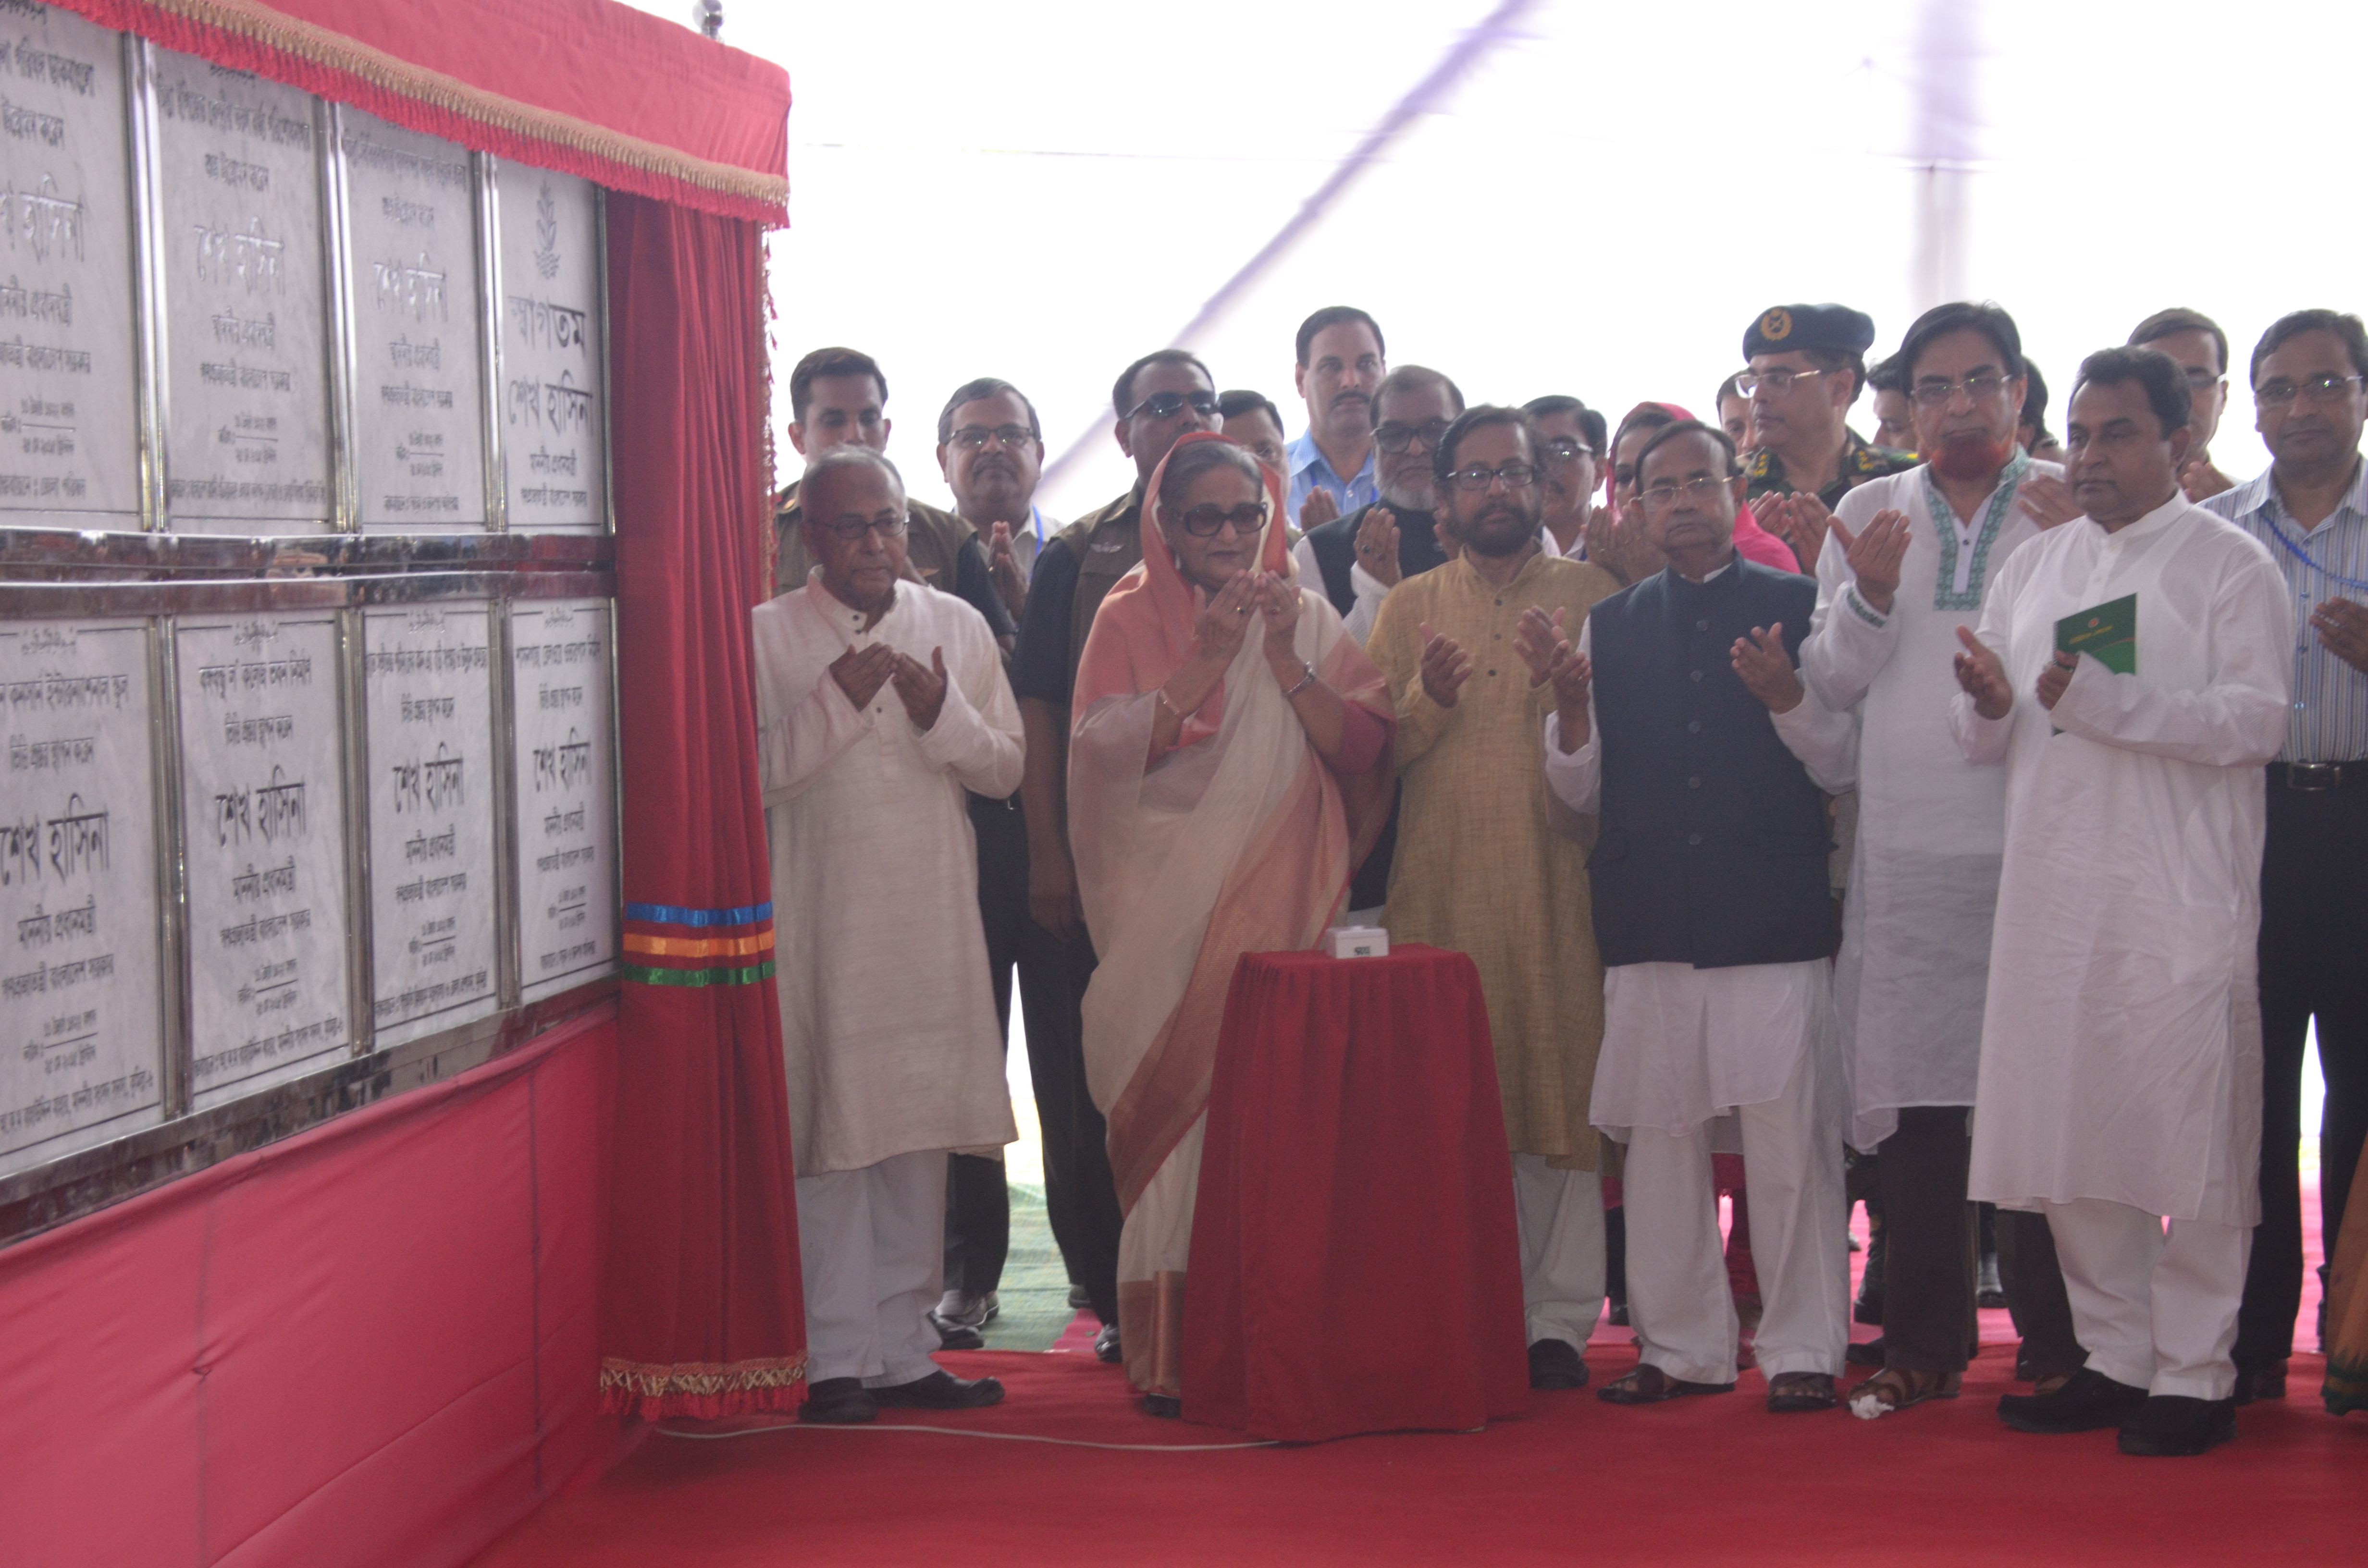 Hon'ble Prime Minister, Sheikh Hasina inaugurates several development works in Comilla including 304 m Bridge on Pararband River and 418 m Bridge on Kathalia River of Meghna Upazila on 25/05/2015, where Chief Engineer of LGED, Mr. Shyama Prosad Adhikari was present. LGED is the implementing Agency to construct those Bridges.